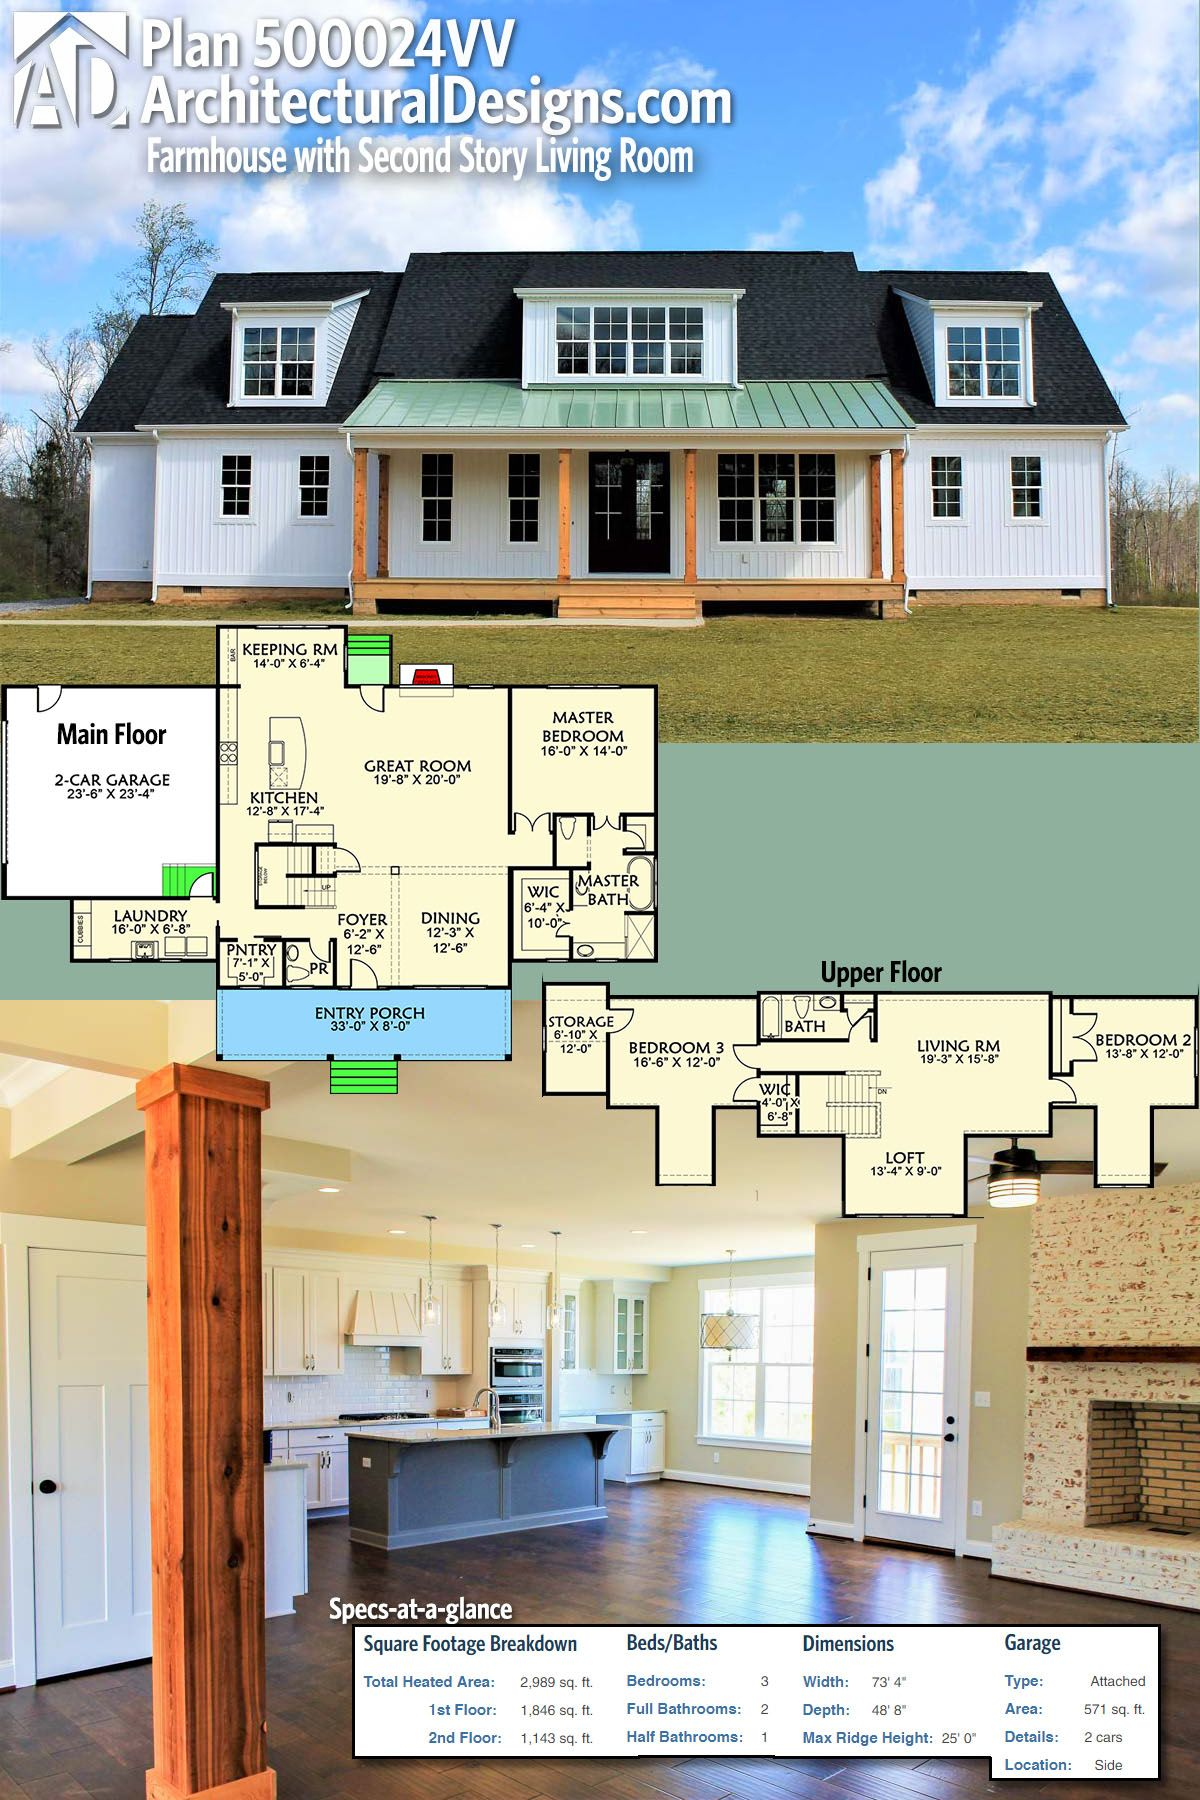 Architectural designs modern farmhouse plan 500024vv has 3 shed dormers and an 8 deep front porch the home gives you 3 beds and over 2900 square feet of